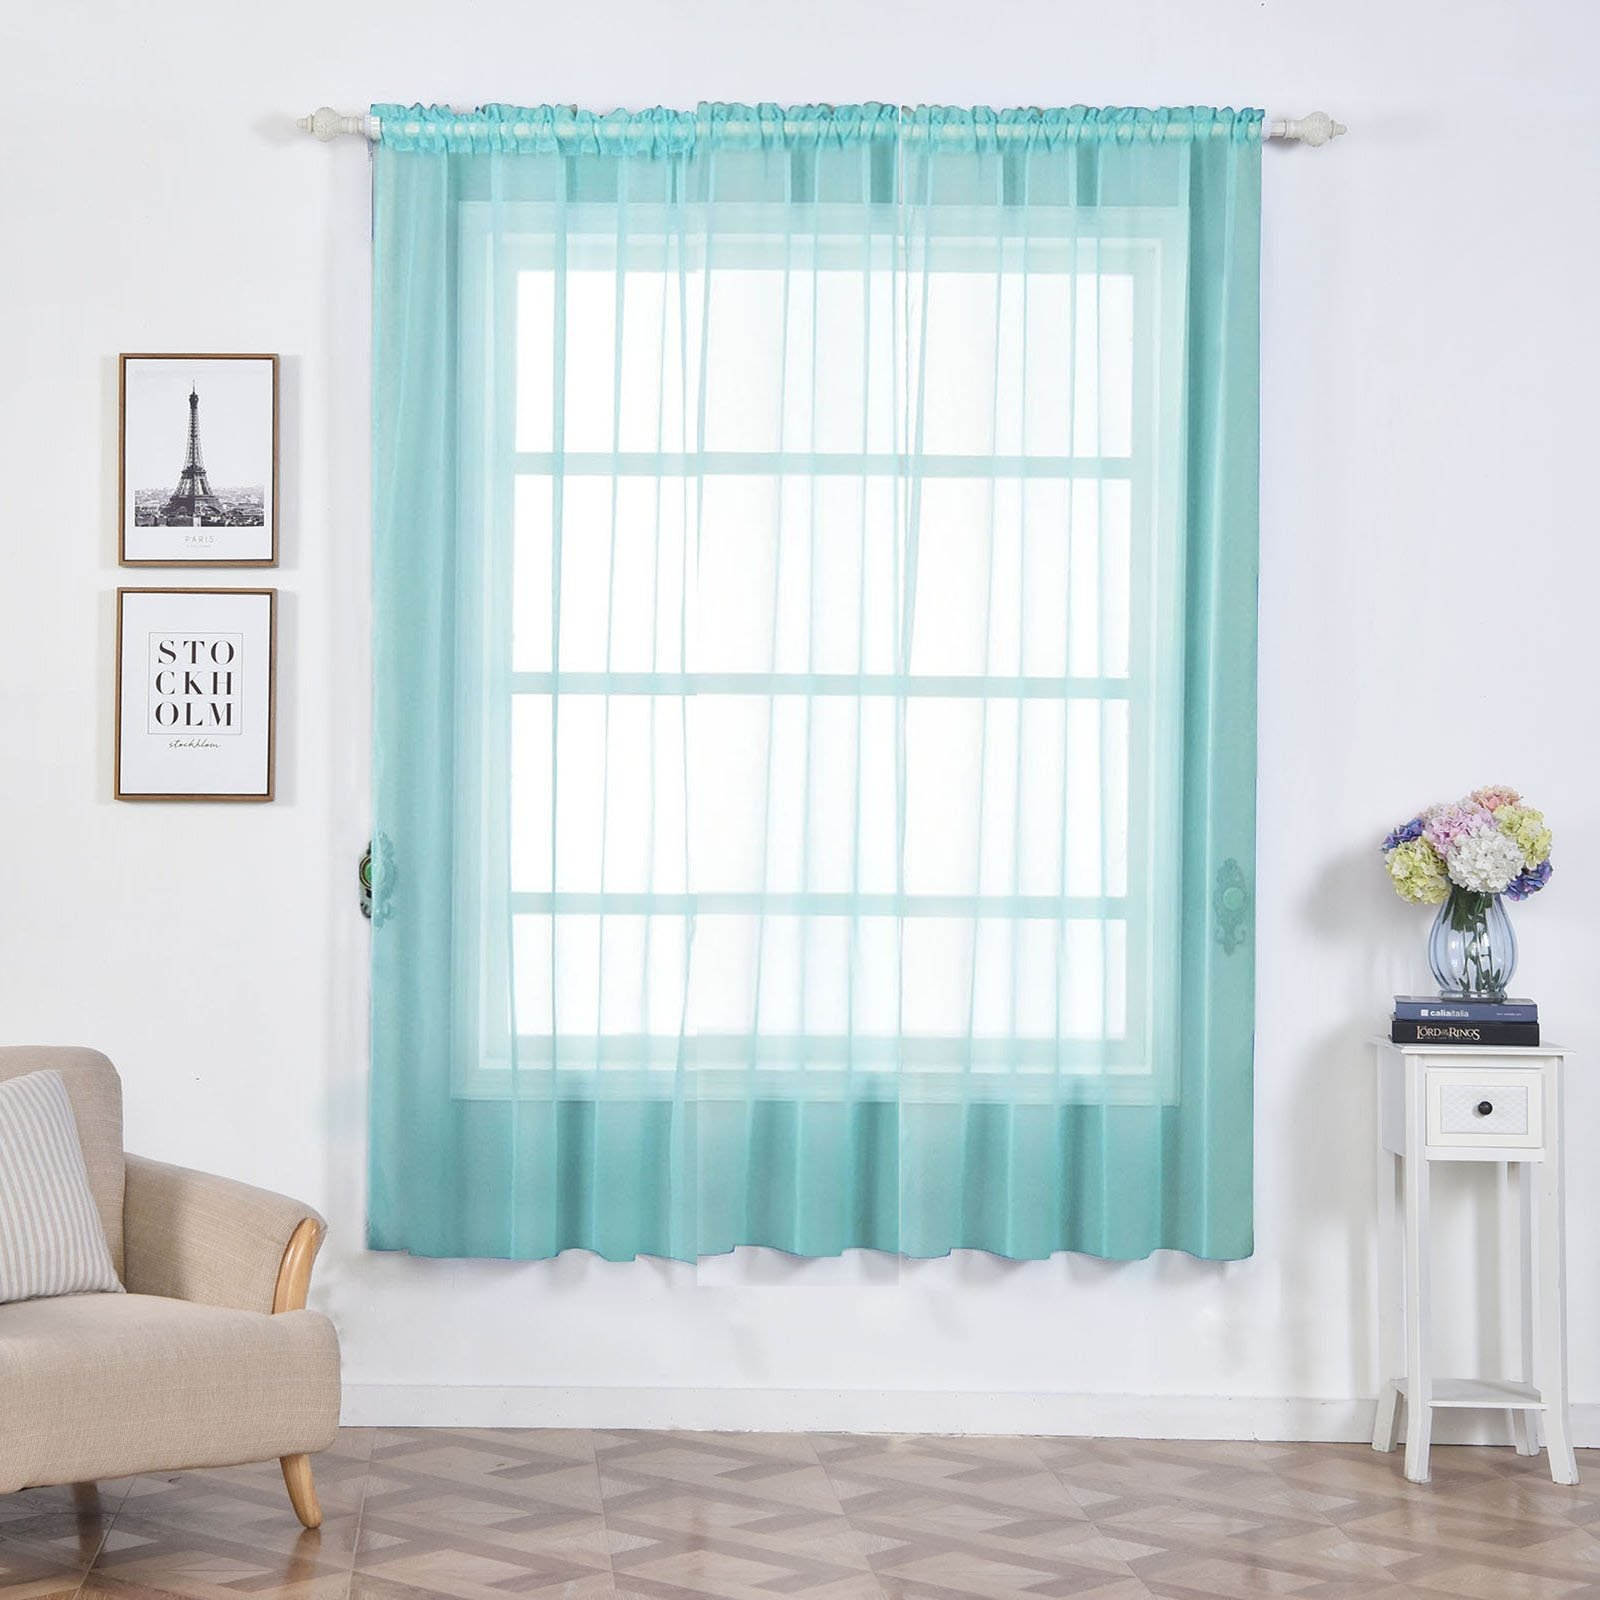 "Efavormart 2 Panels Sheer Organza Window Drapery with Rod Pocket Window Treatment Curtain Panels For Window Decoration 52""Wx84""L"